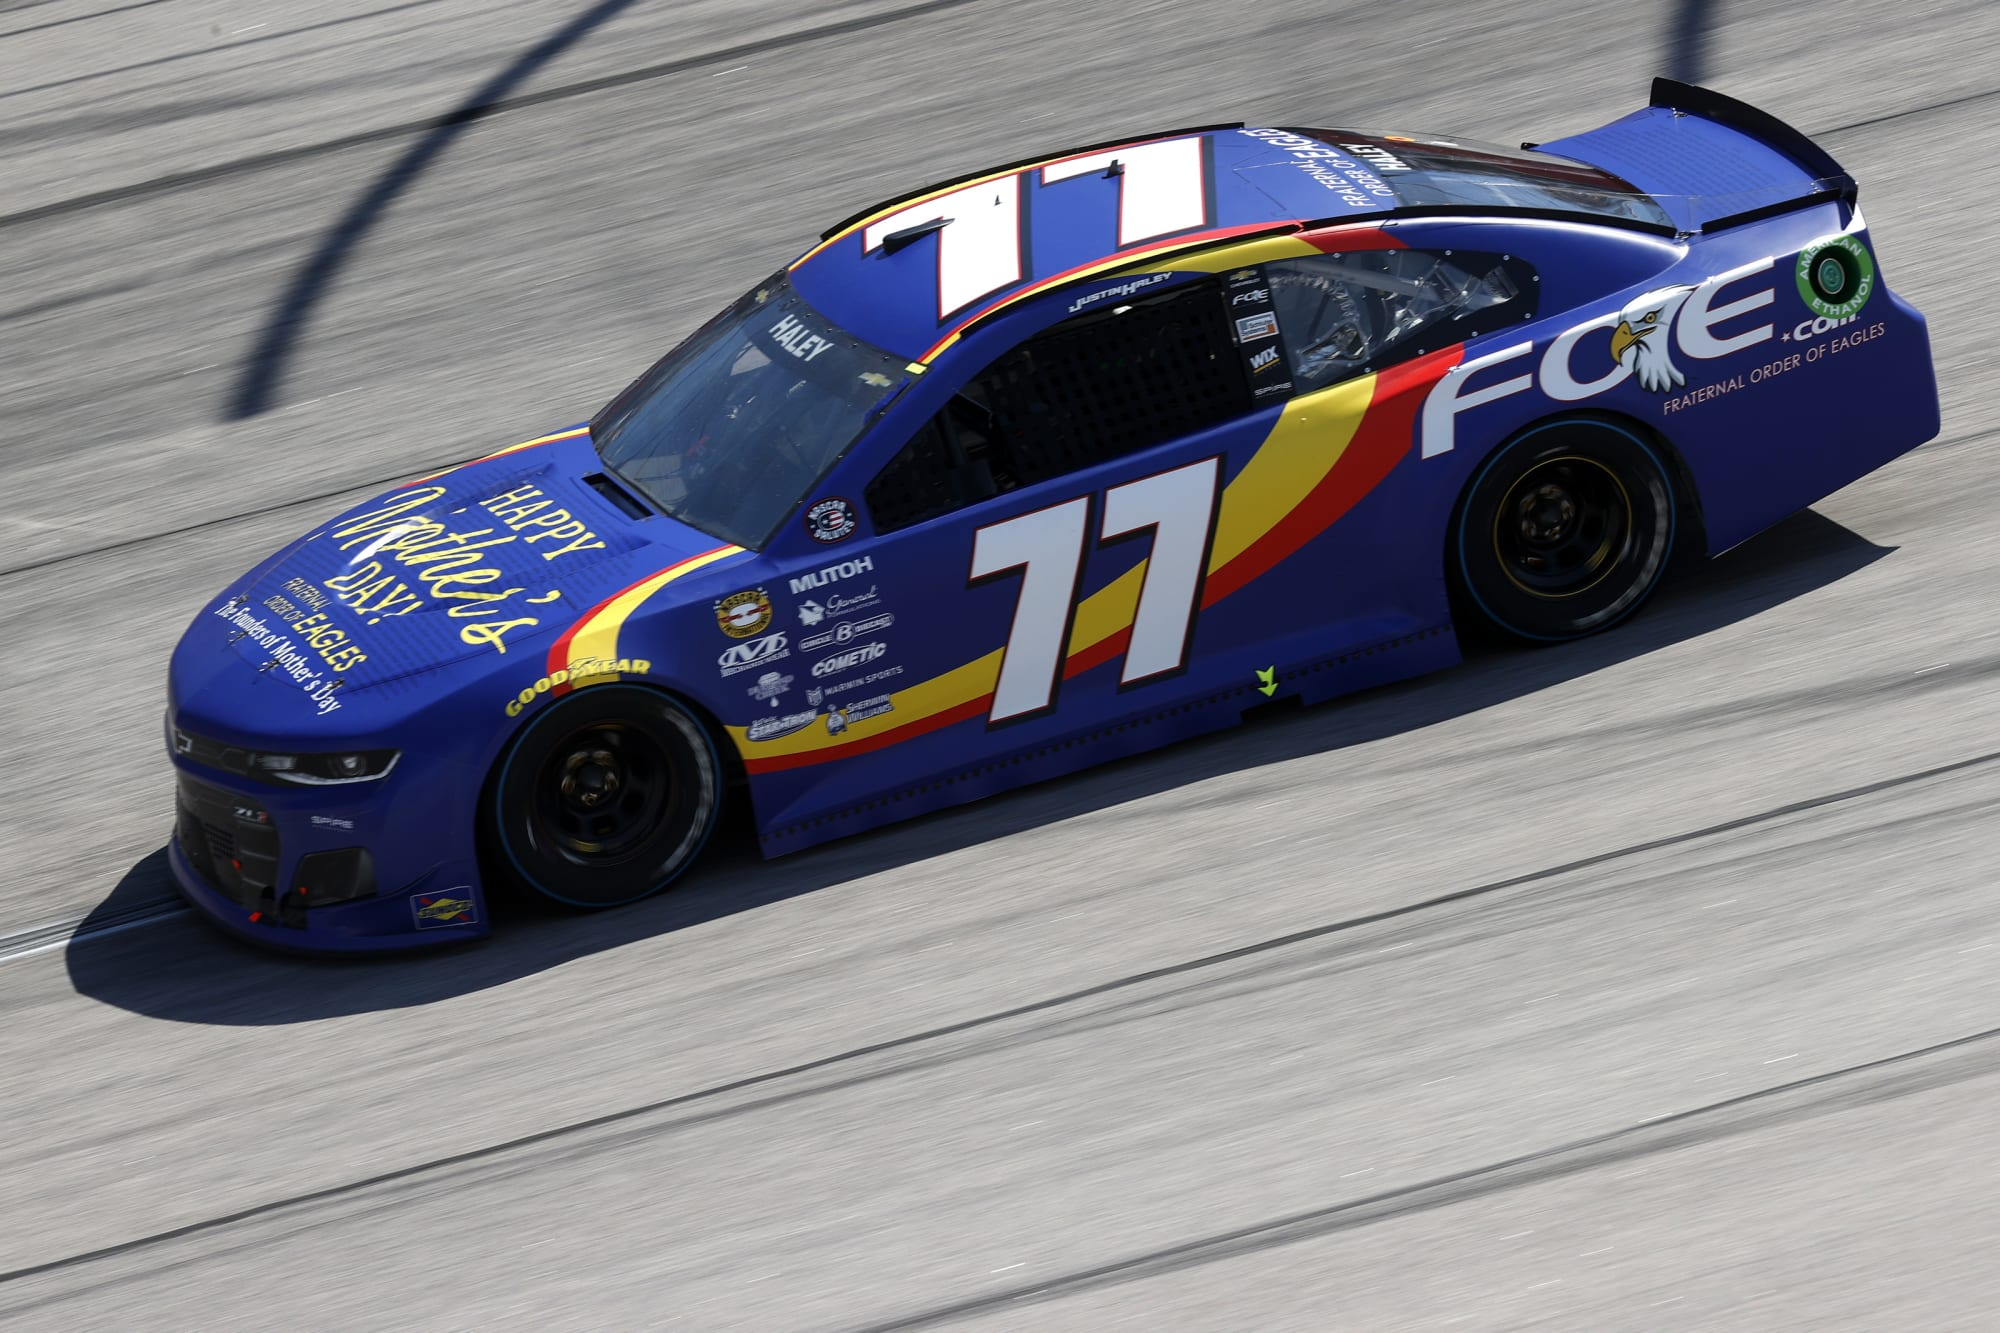 NASCAR: Driver lineup change ahead of Dover race